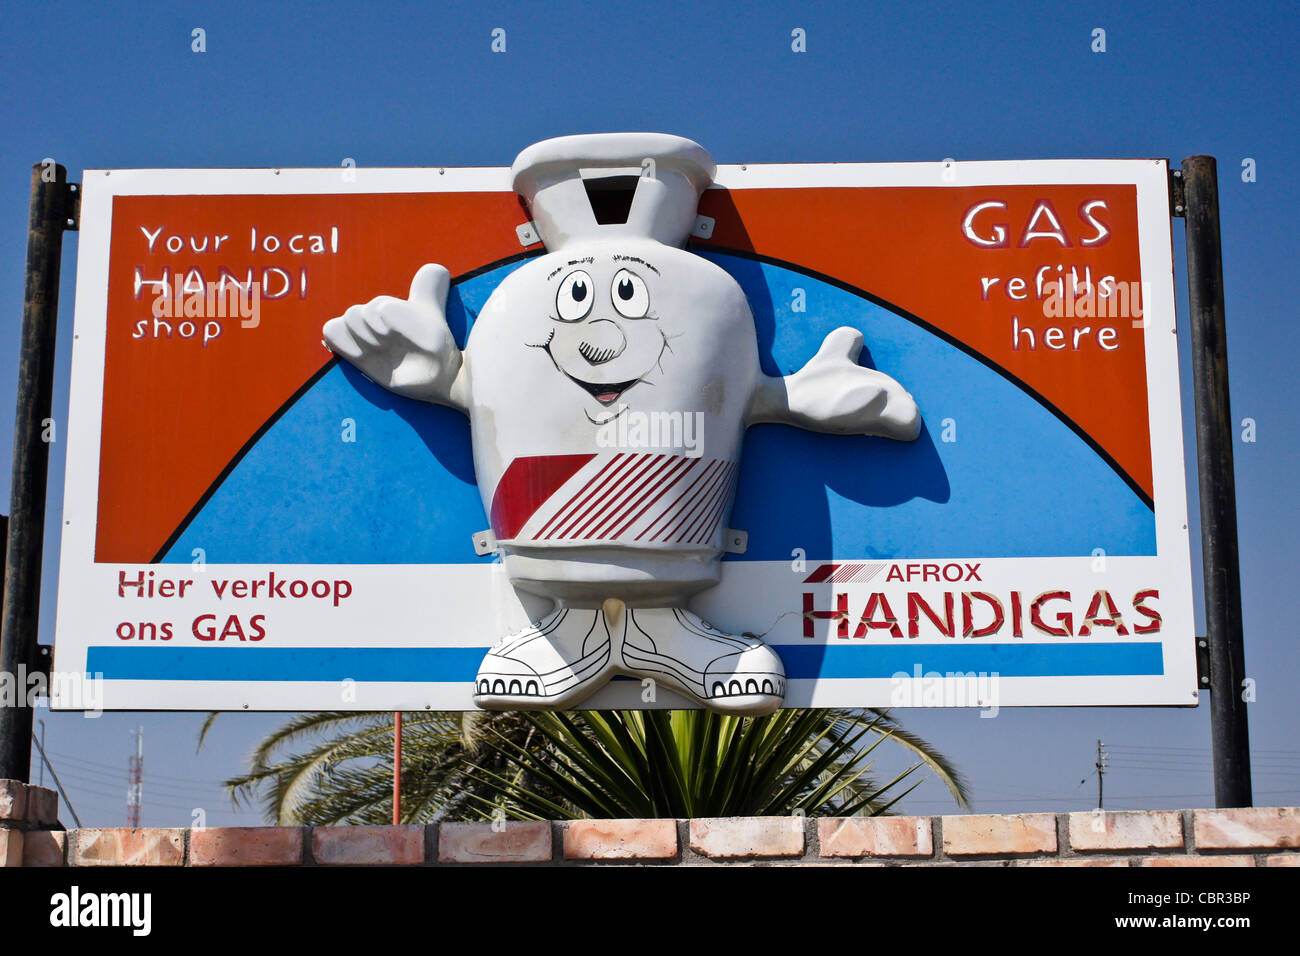 Billboard at gas station in Namibia - Stock Image